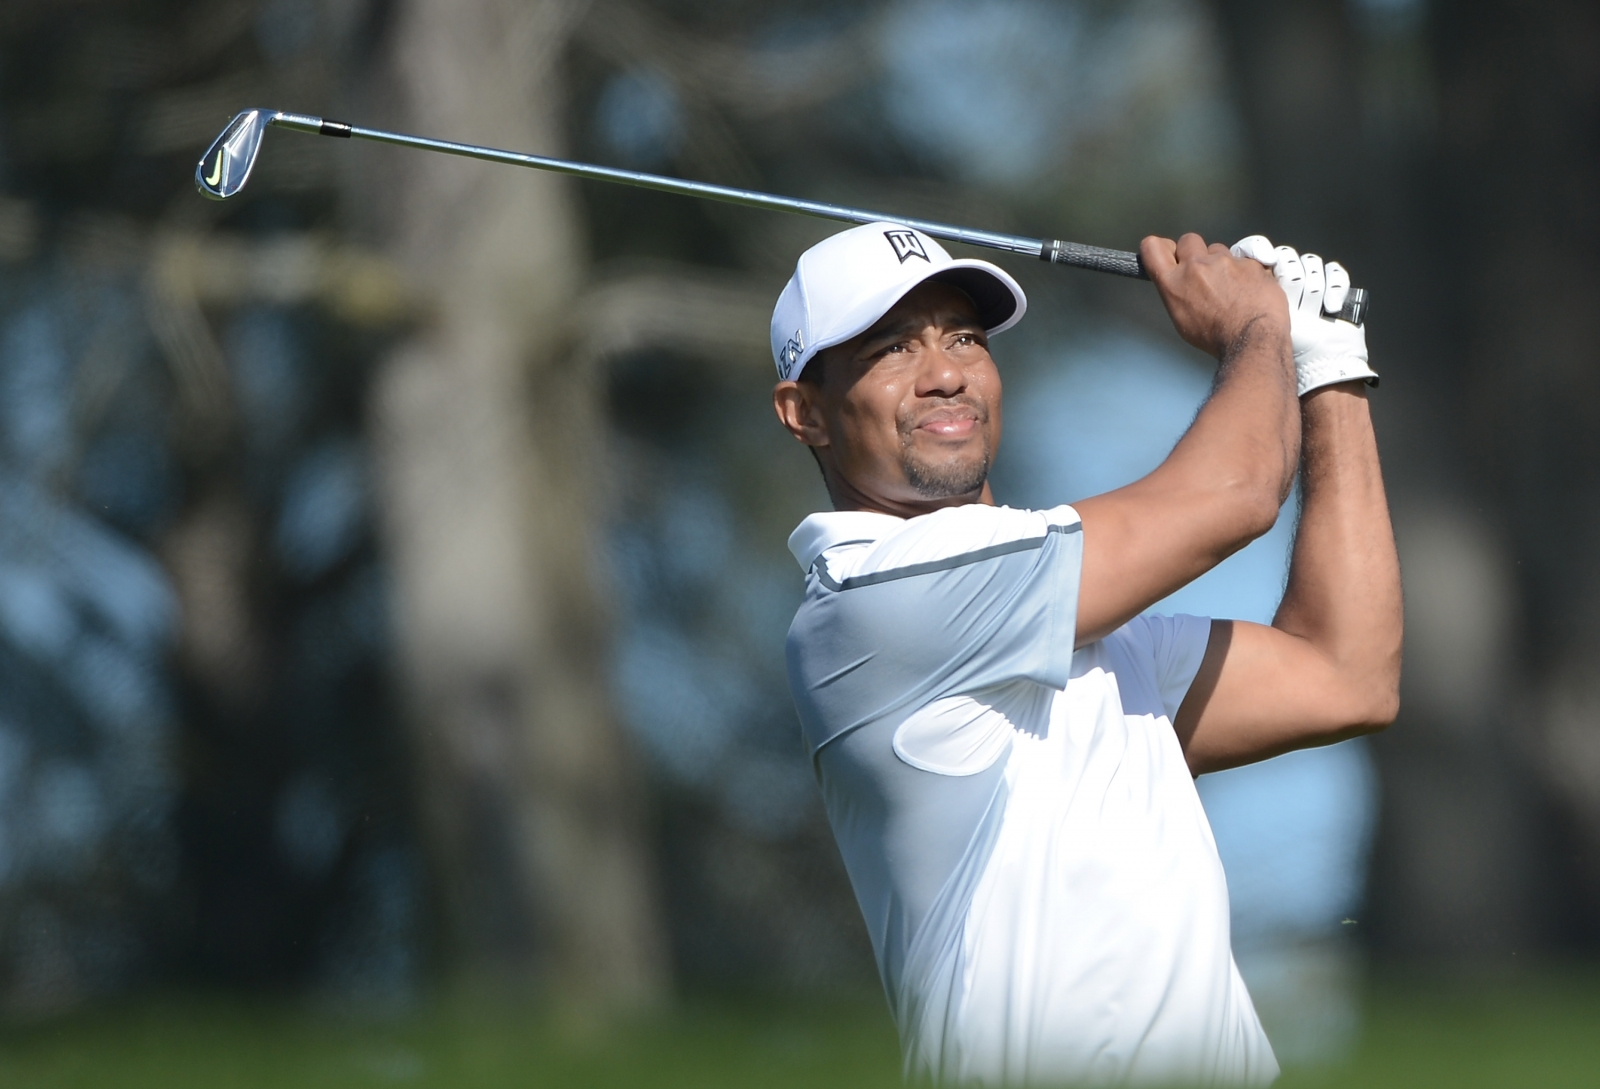 did tiger woods have affair with fellow golfer jason